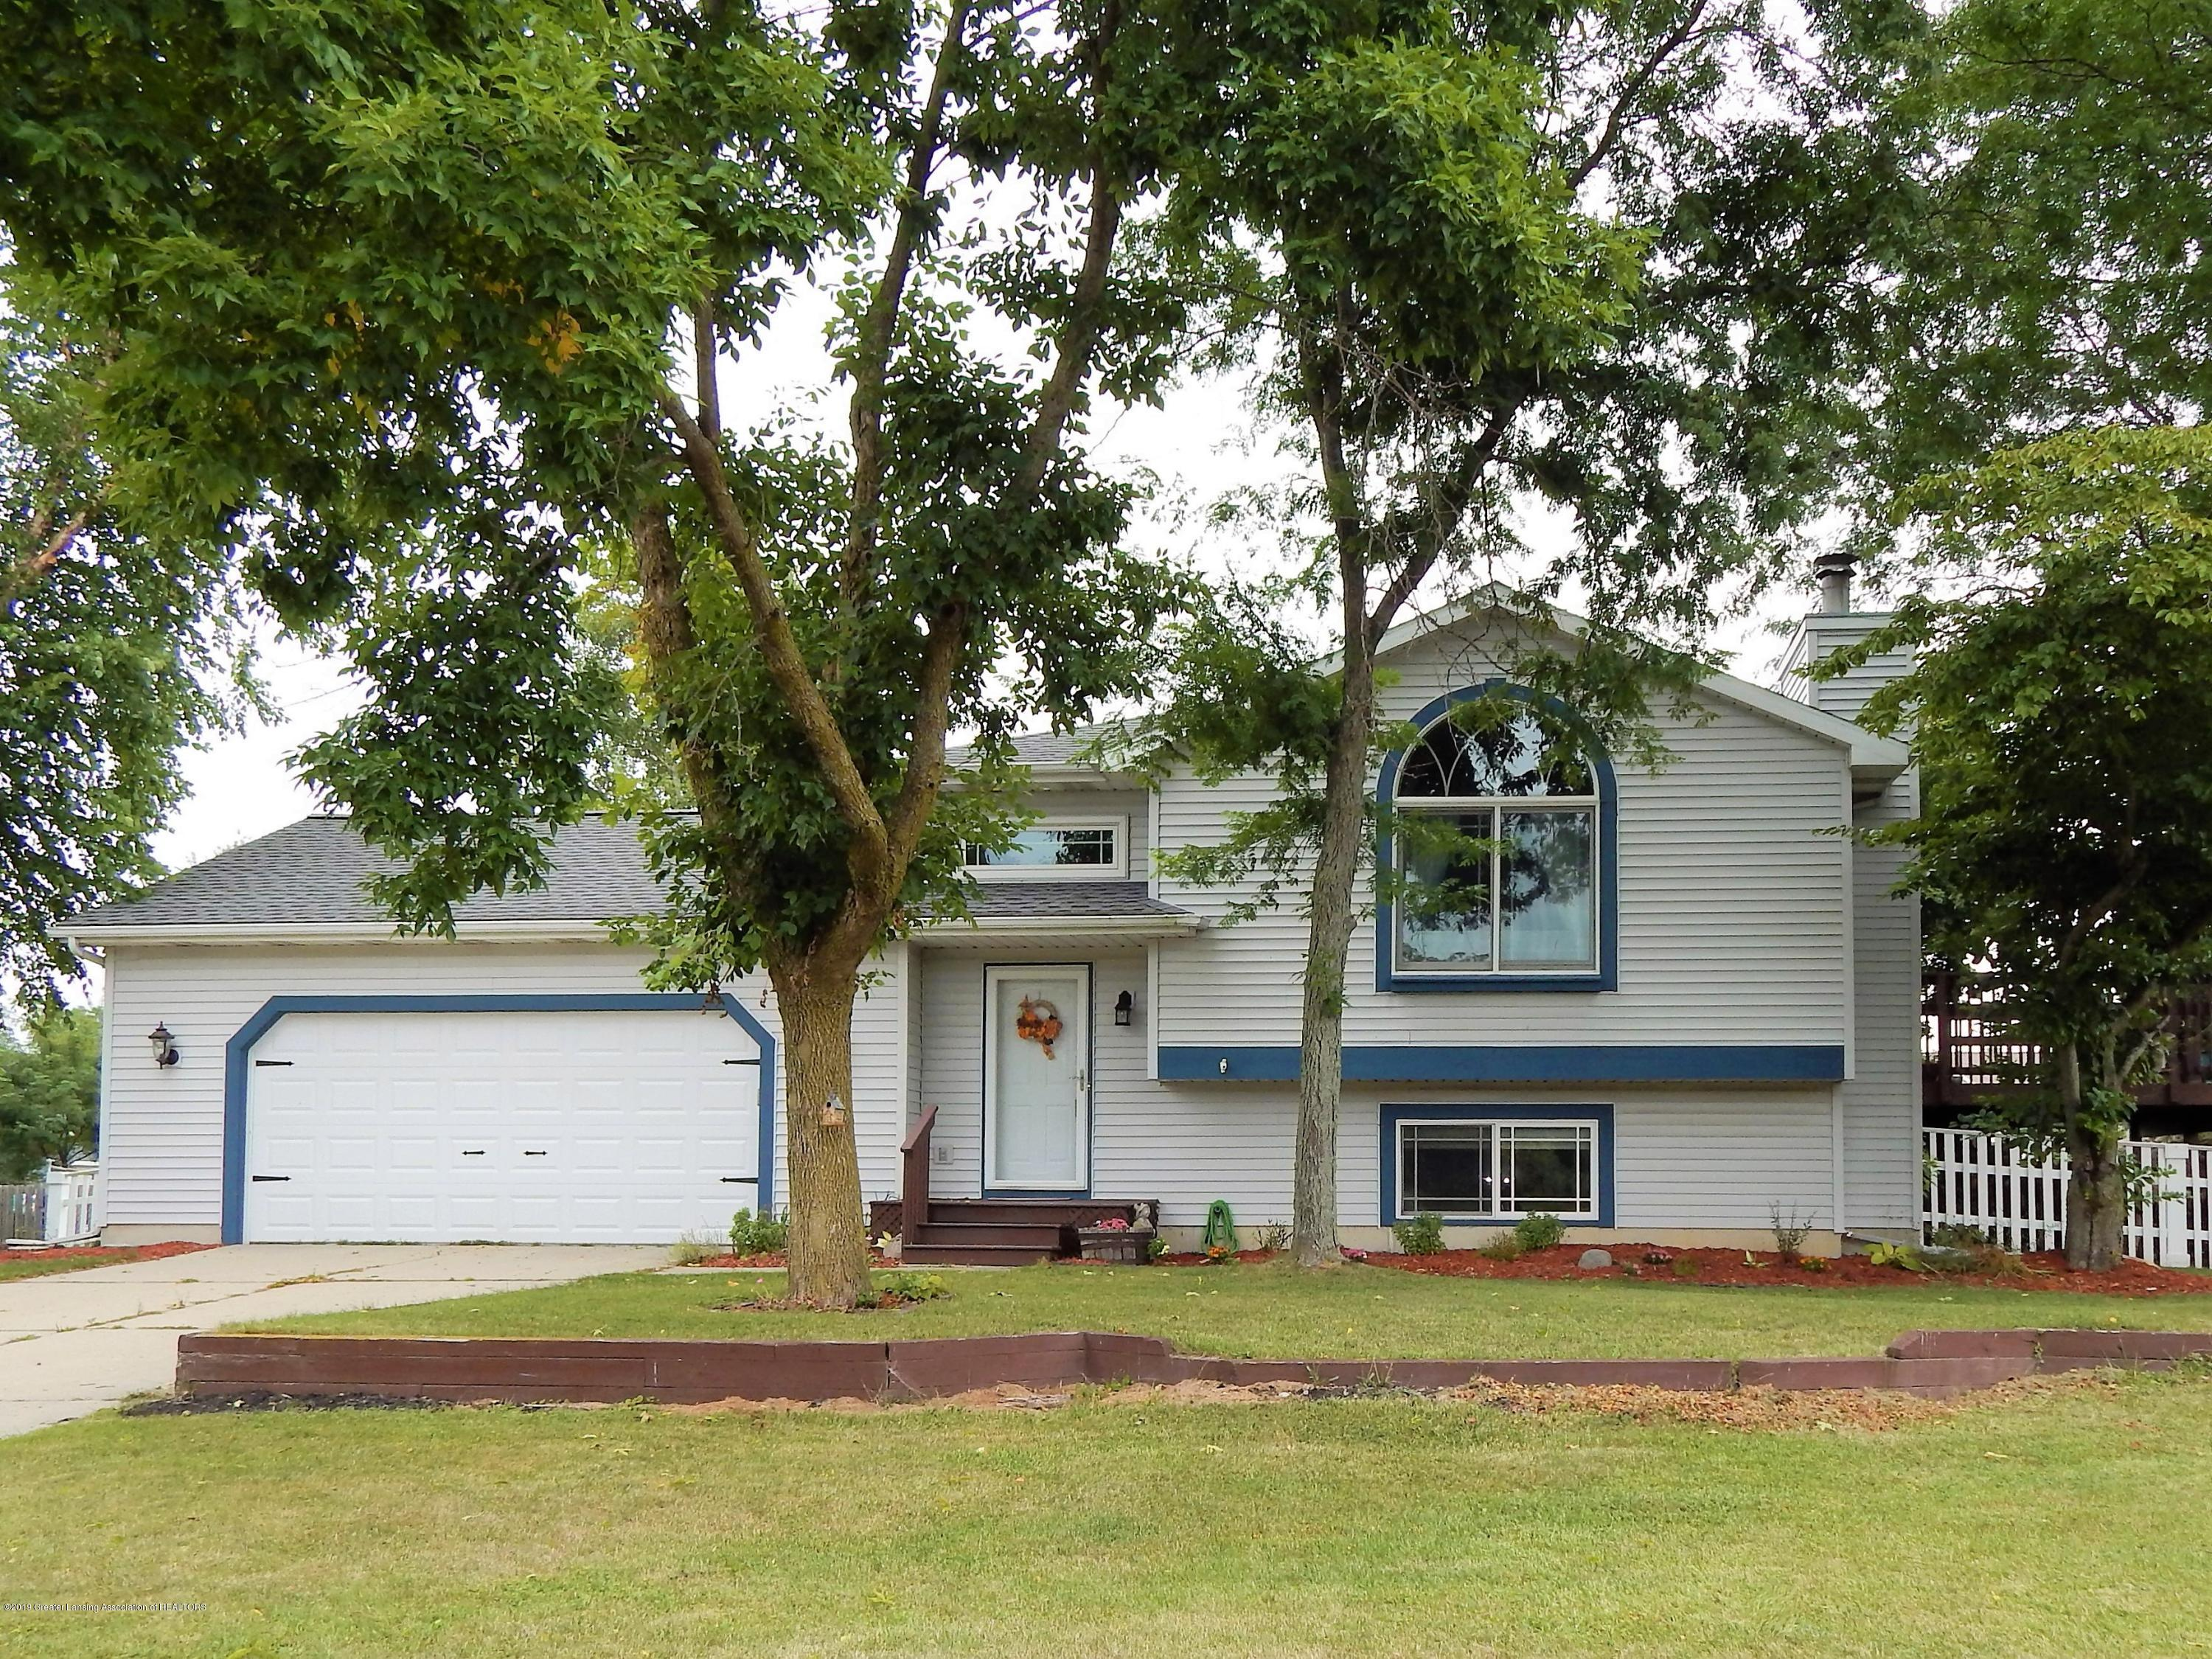 2450 Featherstone Dr - 2450 Featherstone - 1